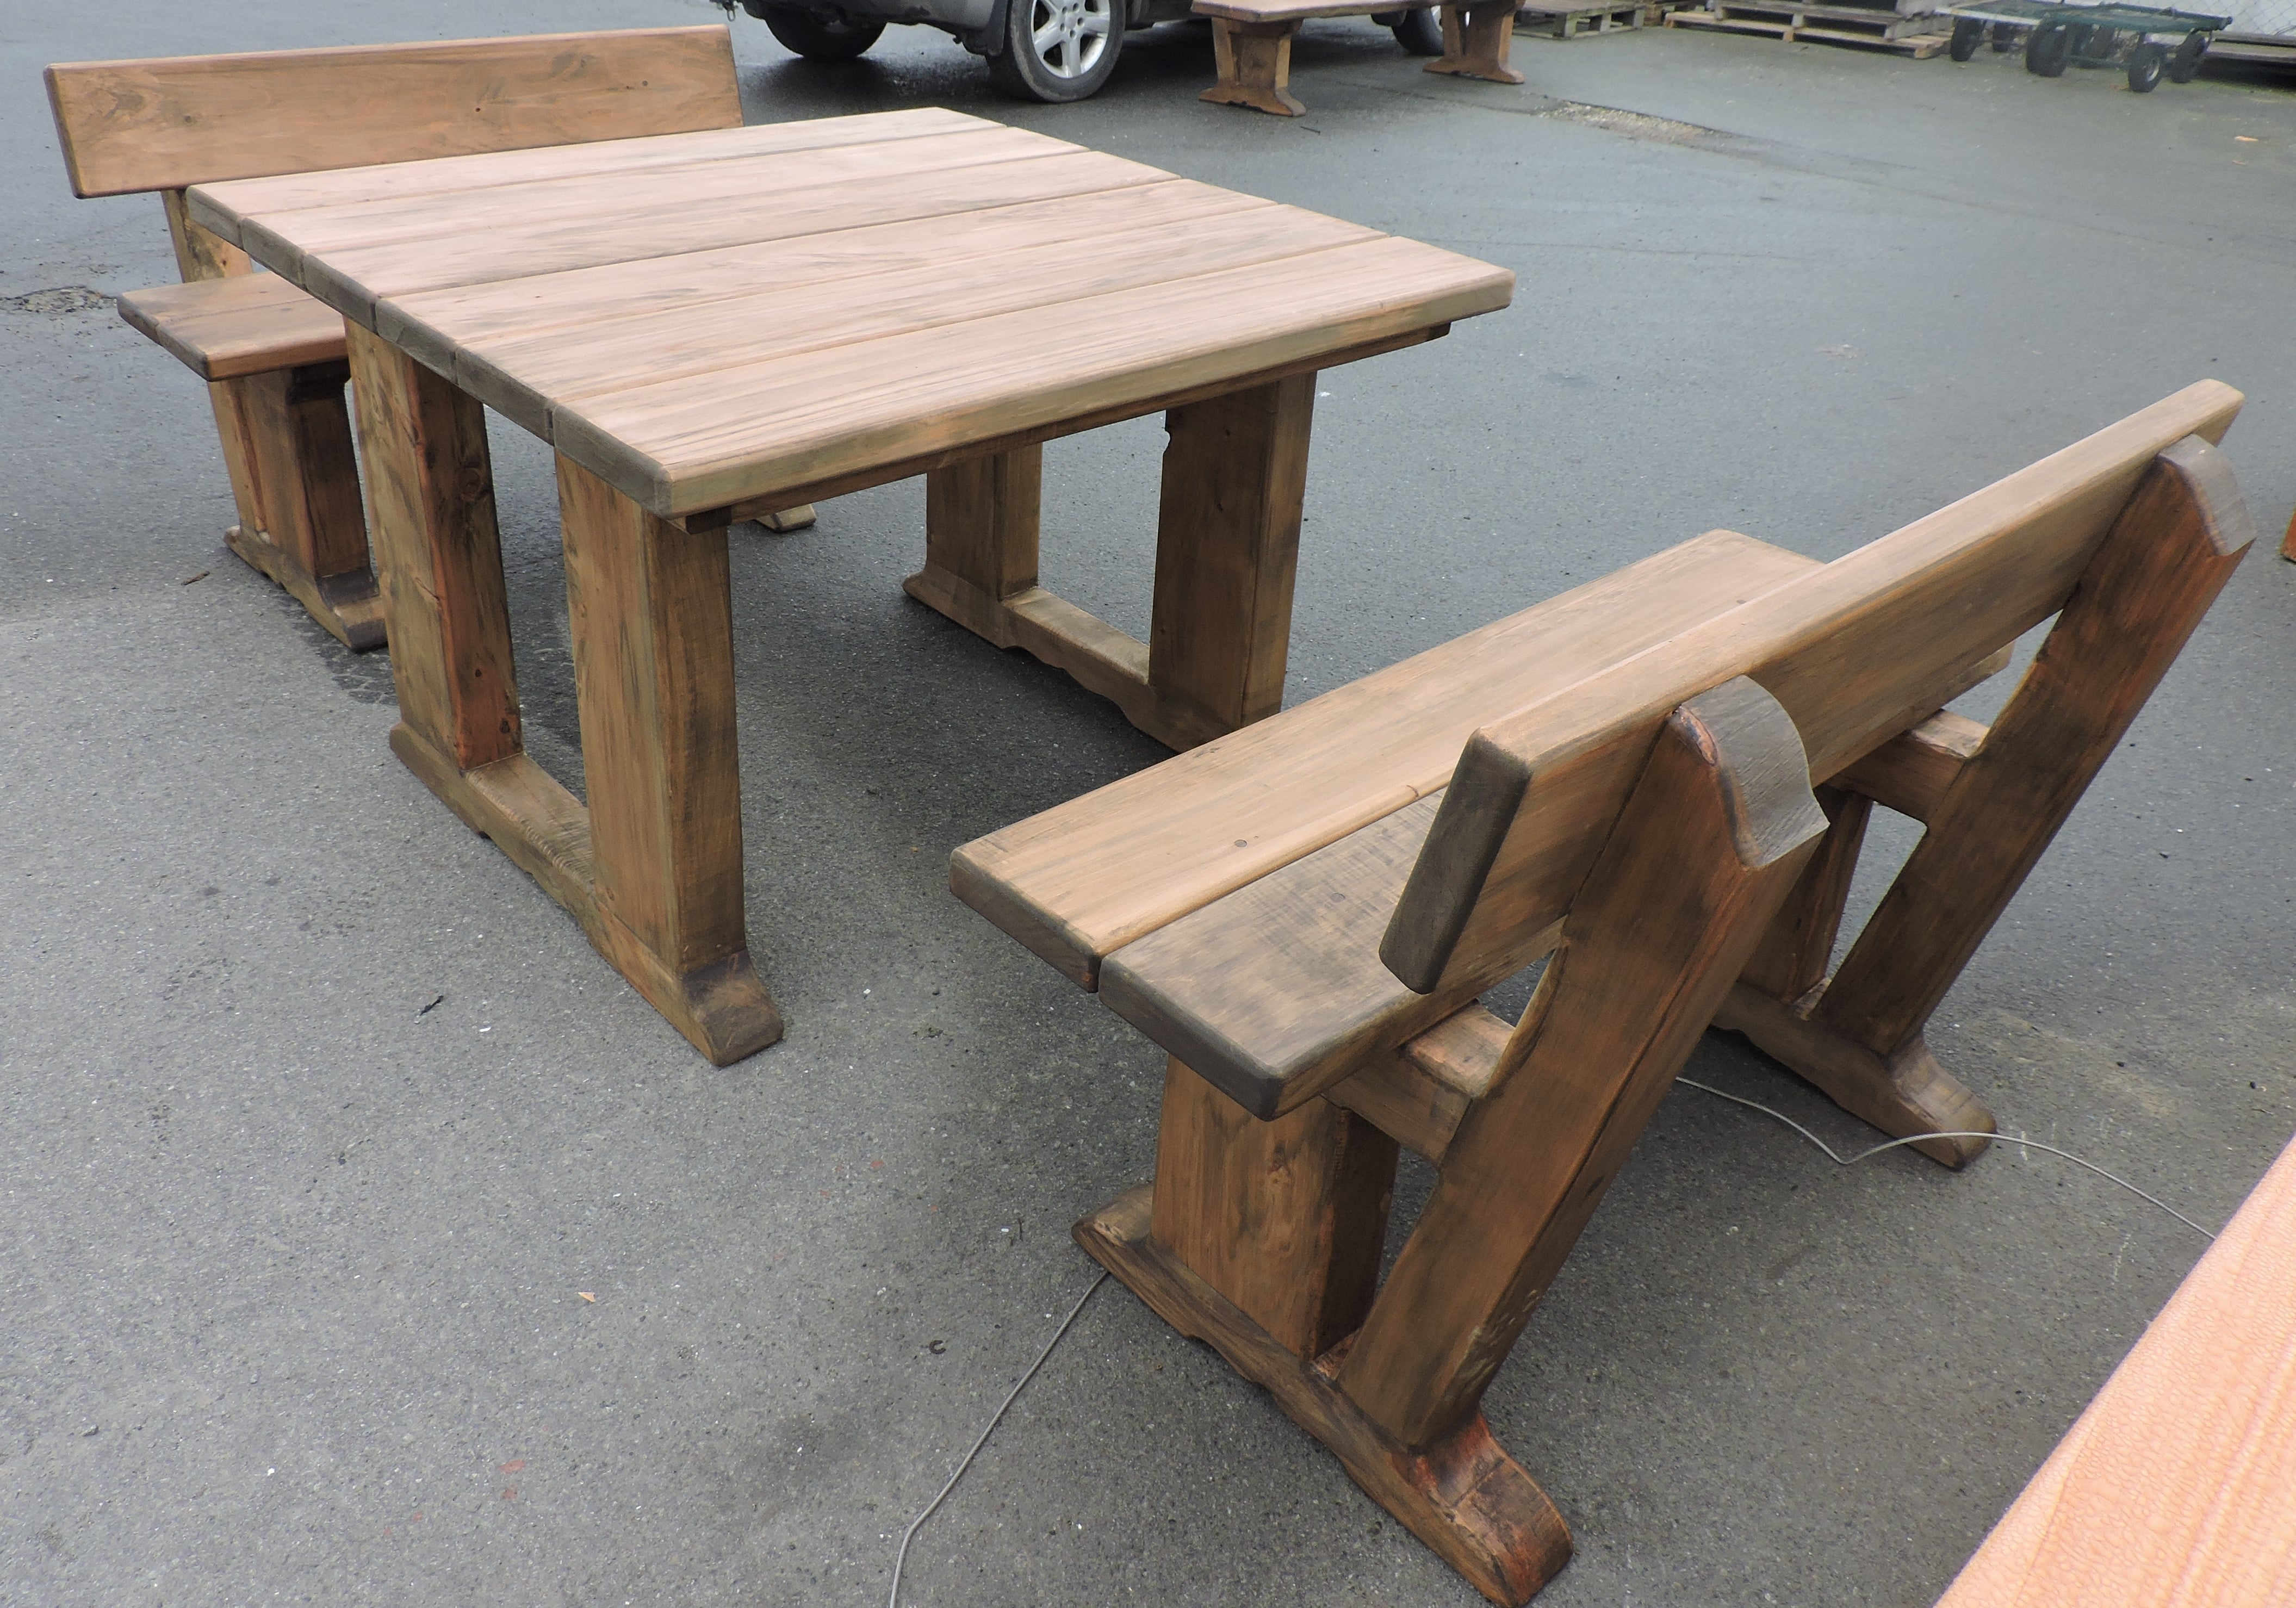 The Caesar square table with two seats